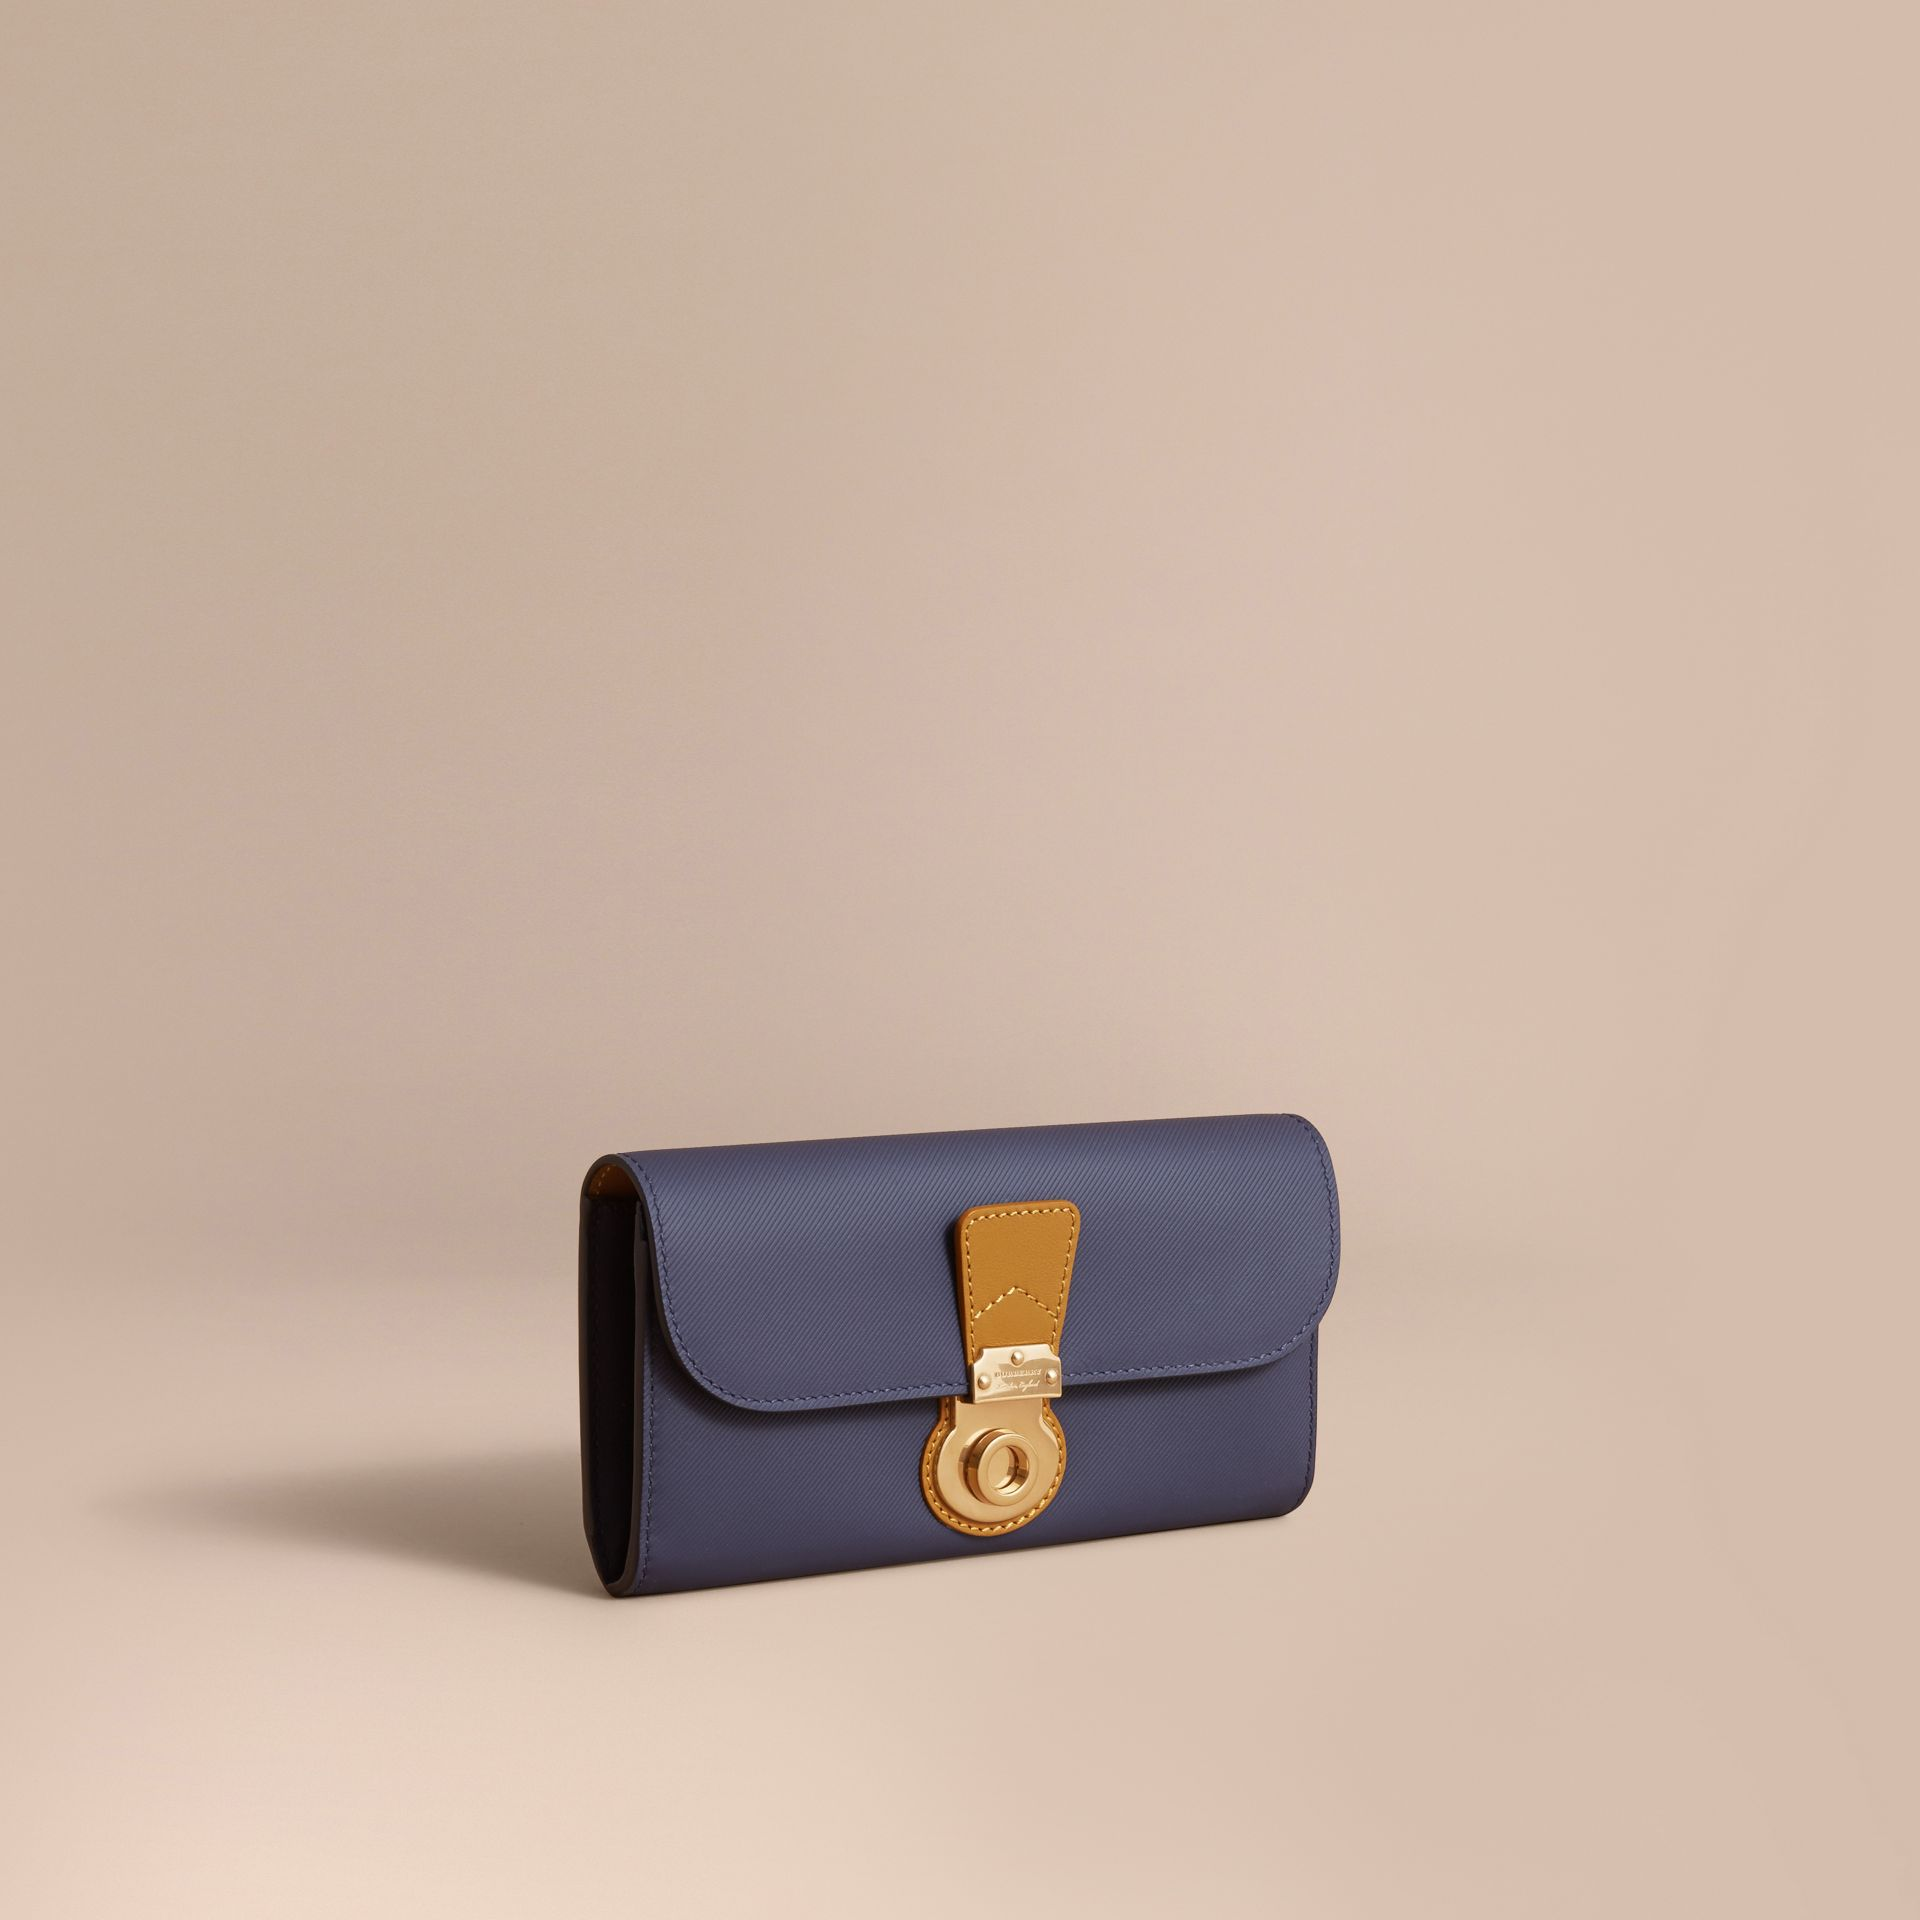 Two-tone Trench Leather Continental Wallet in Ink Blue/ochre Yellow - Women | Burberry - gallery image 1